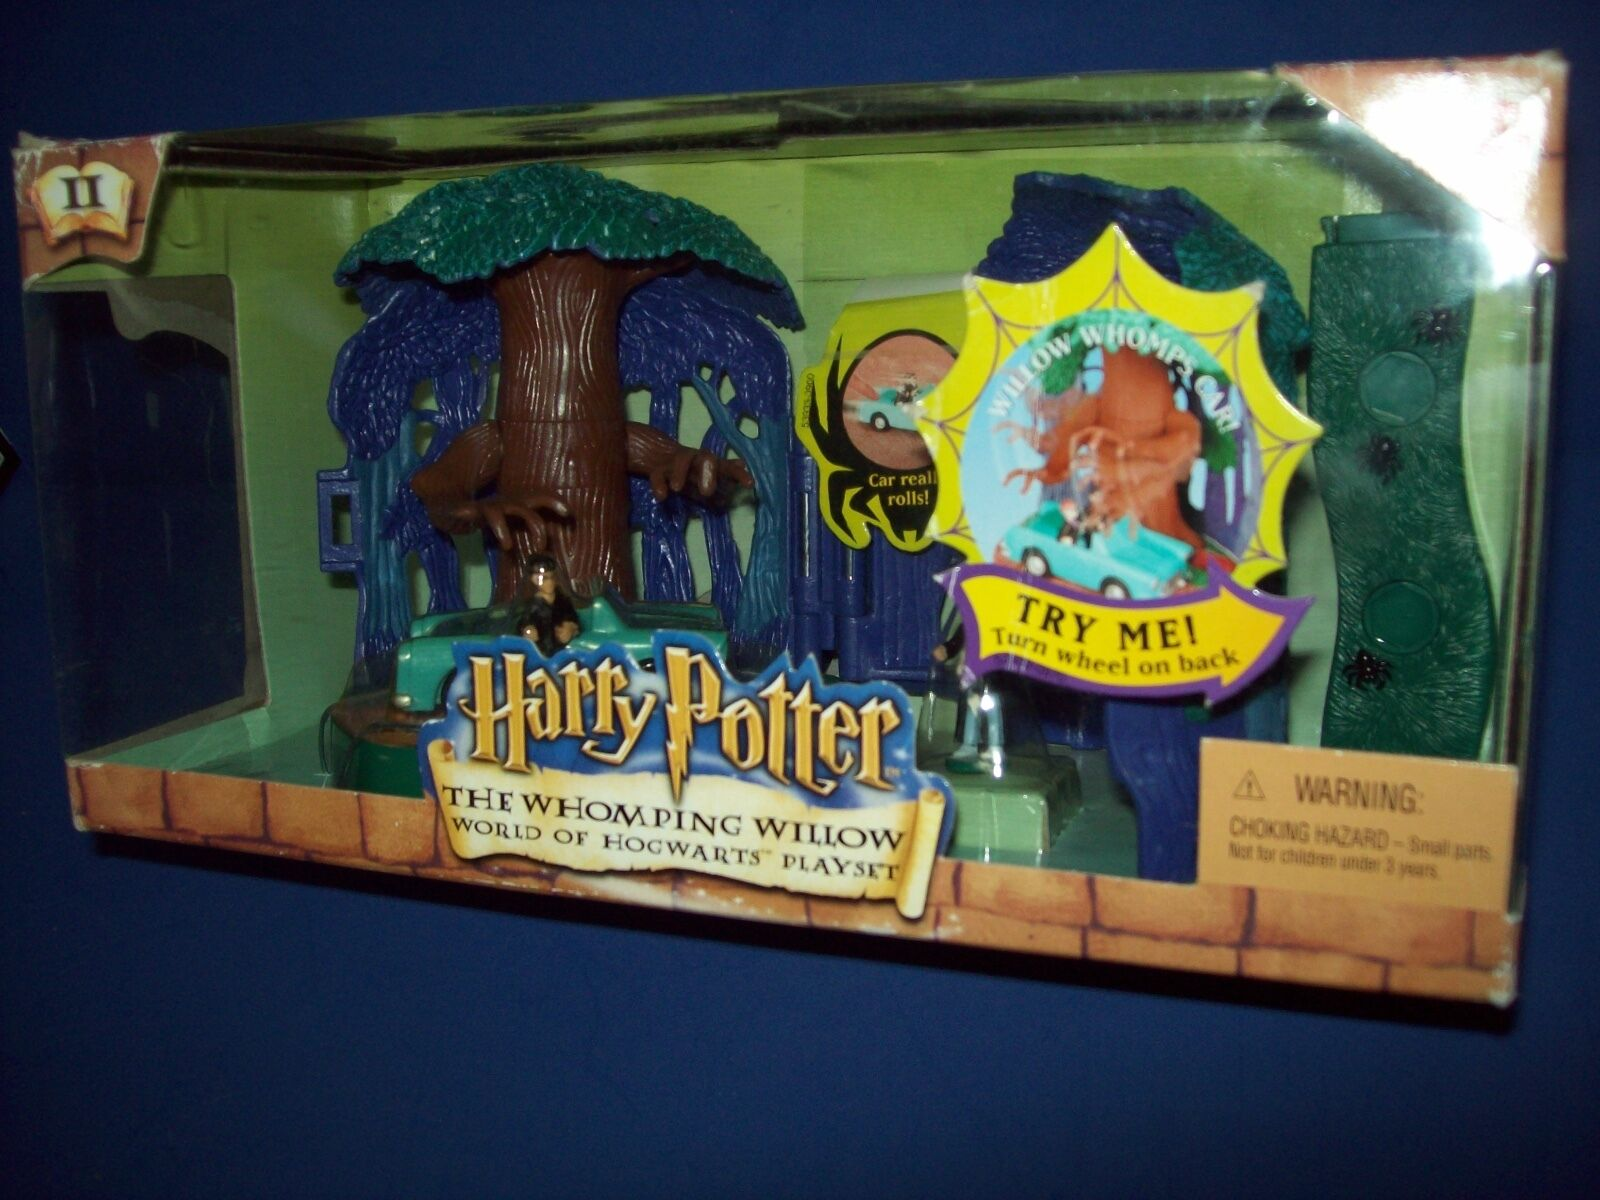 Harry potter whomping willow micr abbildung playset 2001 für minifigures